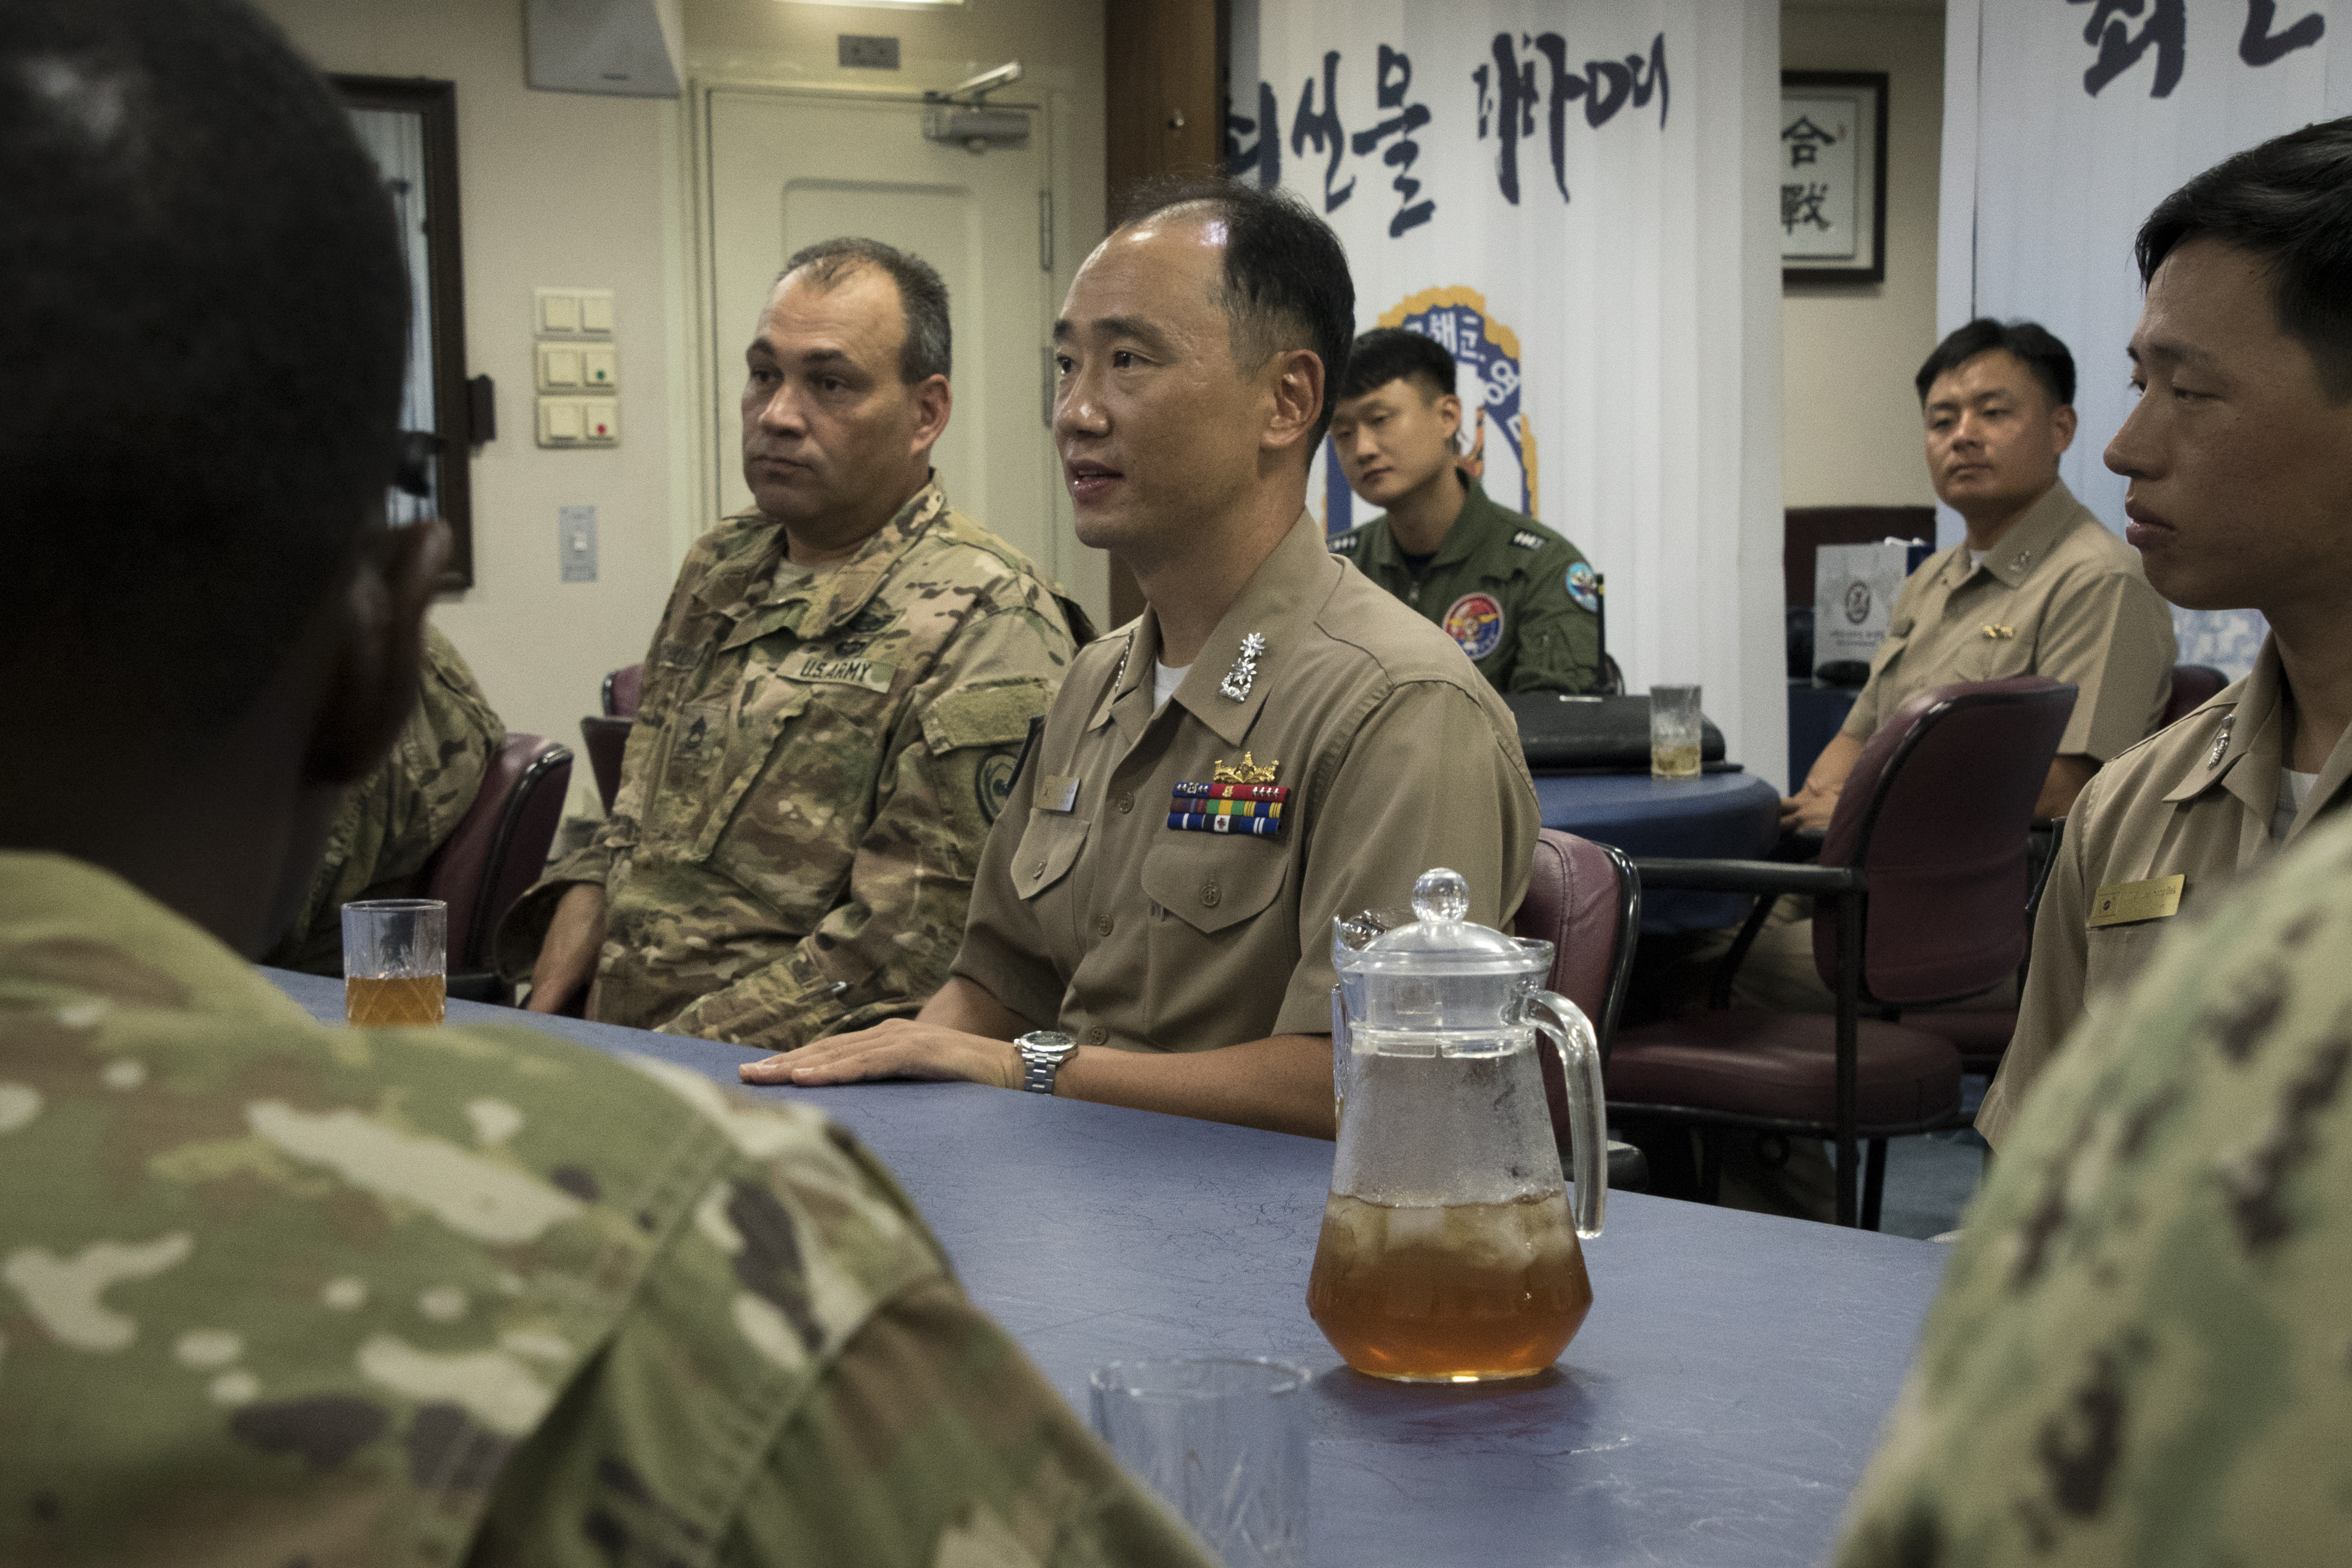 South Korean Navy Capt. Kim Kyung-Ryul, Commander of the Republic of Korea Choi-Young DDH-981, serves traditional tea to Combined Joint Task Force-Horn of Africa members who joined members of Camp Lemonnier, Djibouti, in a visit to ROKS Choi Young DDH-981, May 8, 2017. The ship is a Chungmugong Yi Sun-sin-class destroyer in the South Korean navy. (U.S. Air National Guard photo by Tech. Sgt. Joe Harwood)